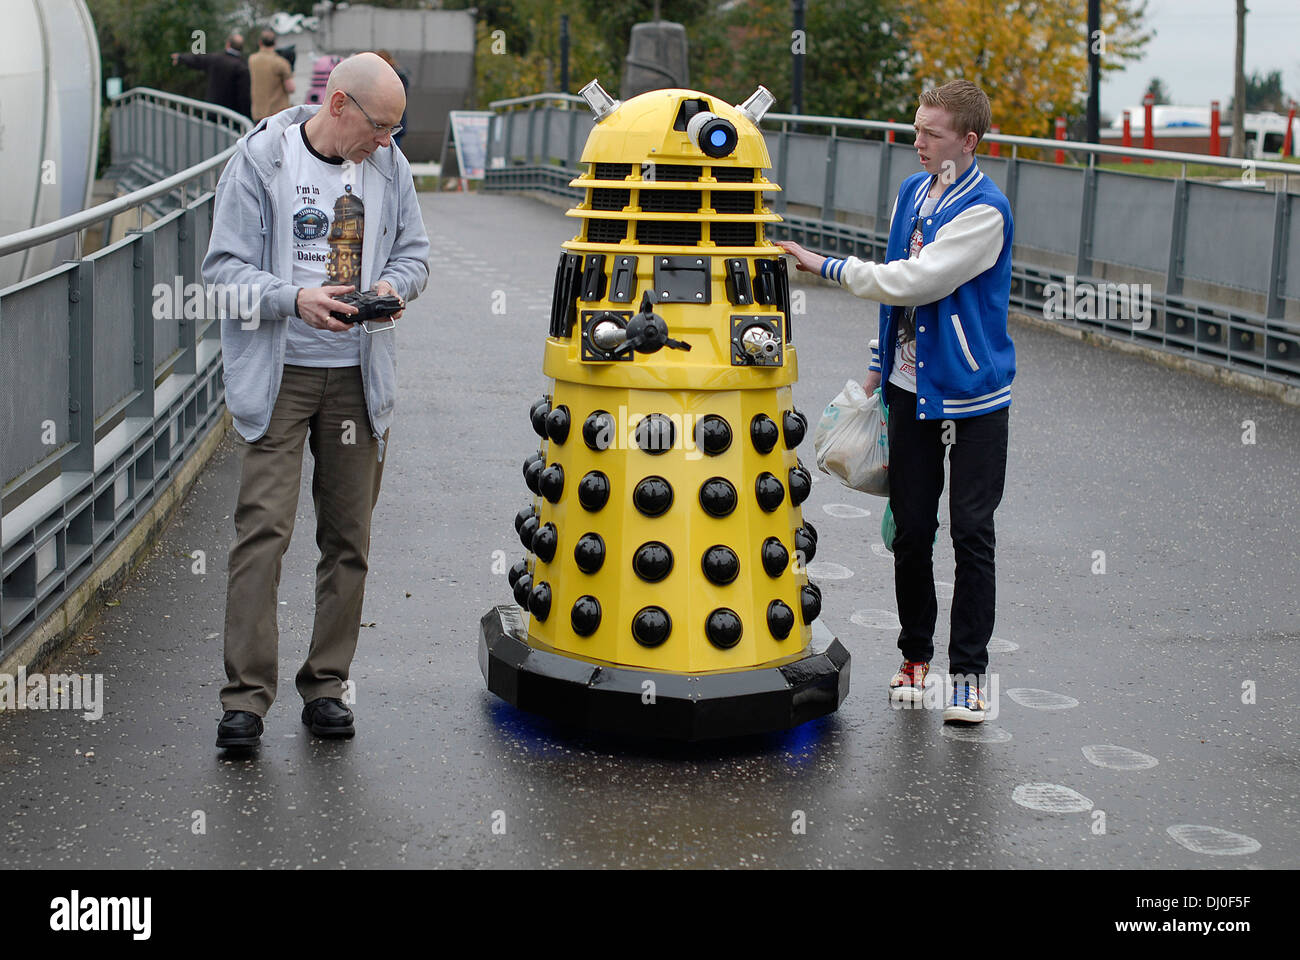 Daleks arriving at the 'Science of the Timelords' event in The National Space Centre at Leicester to celebrate the 50th Anniversary of Dr Who - Stock Image